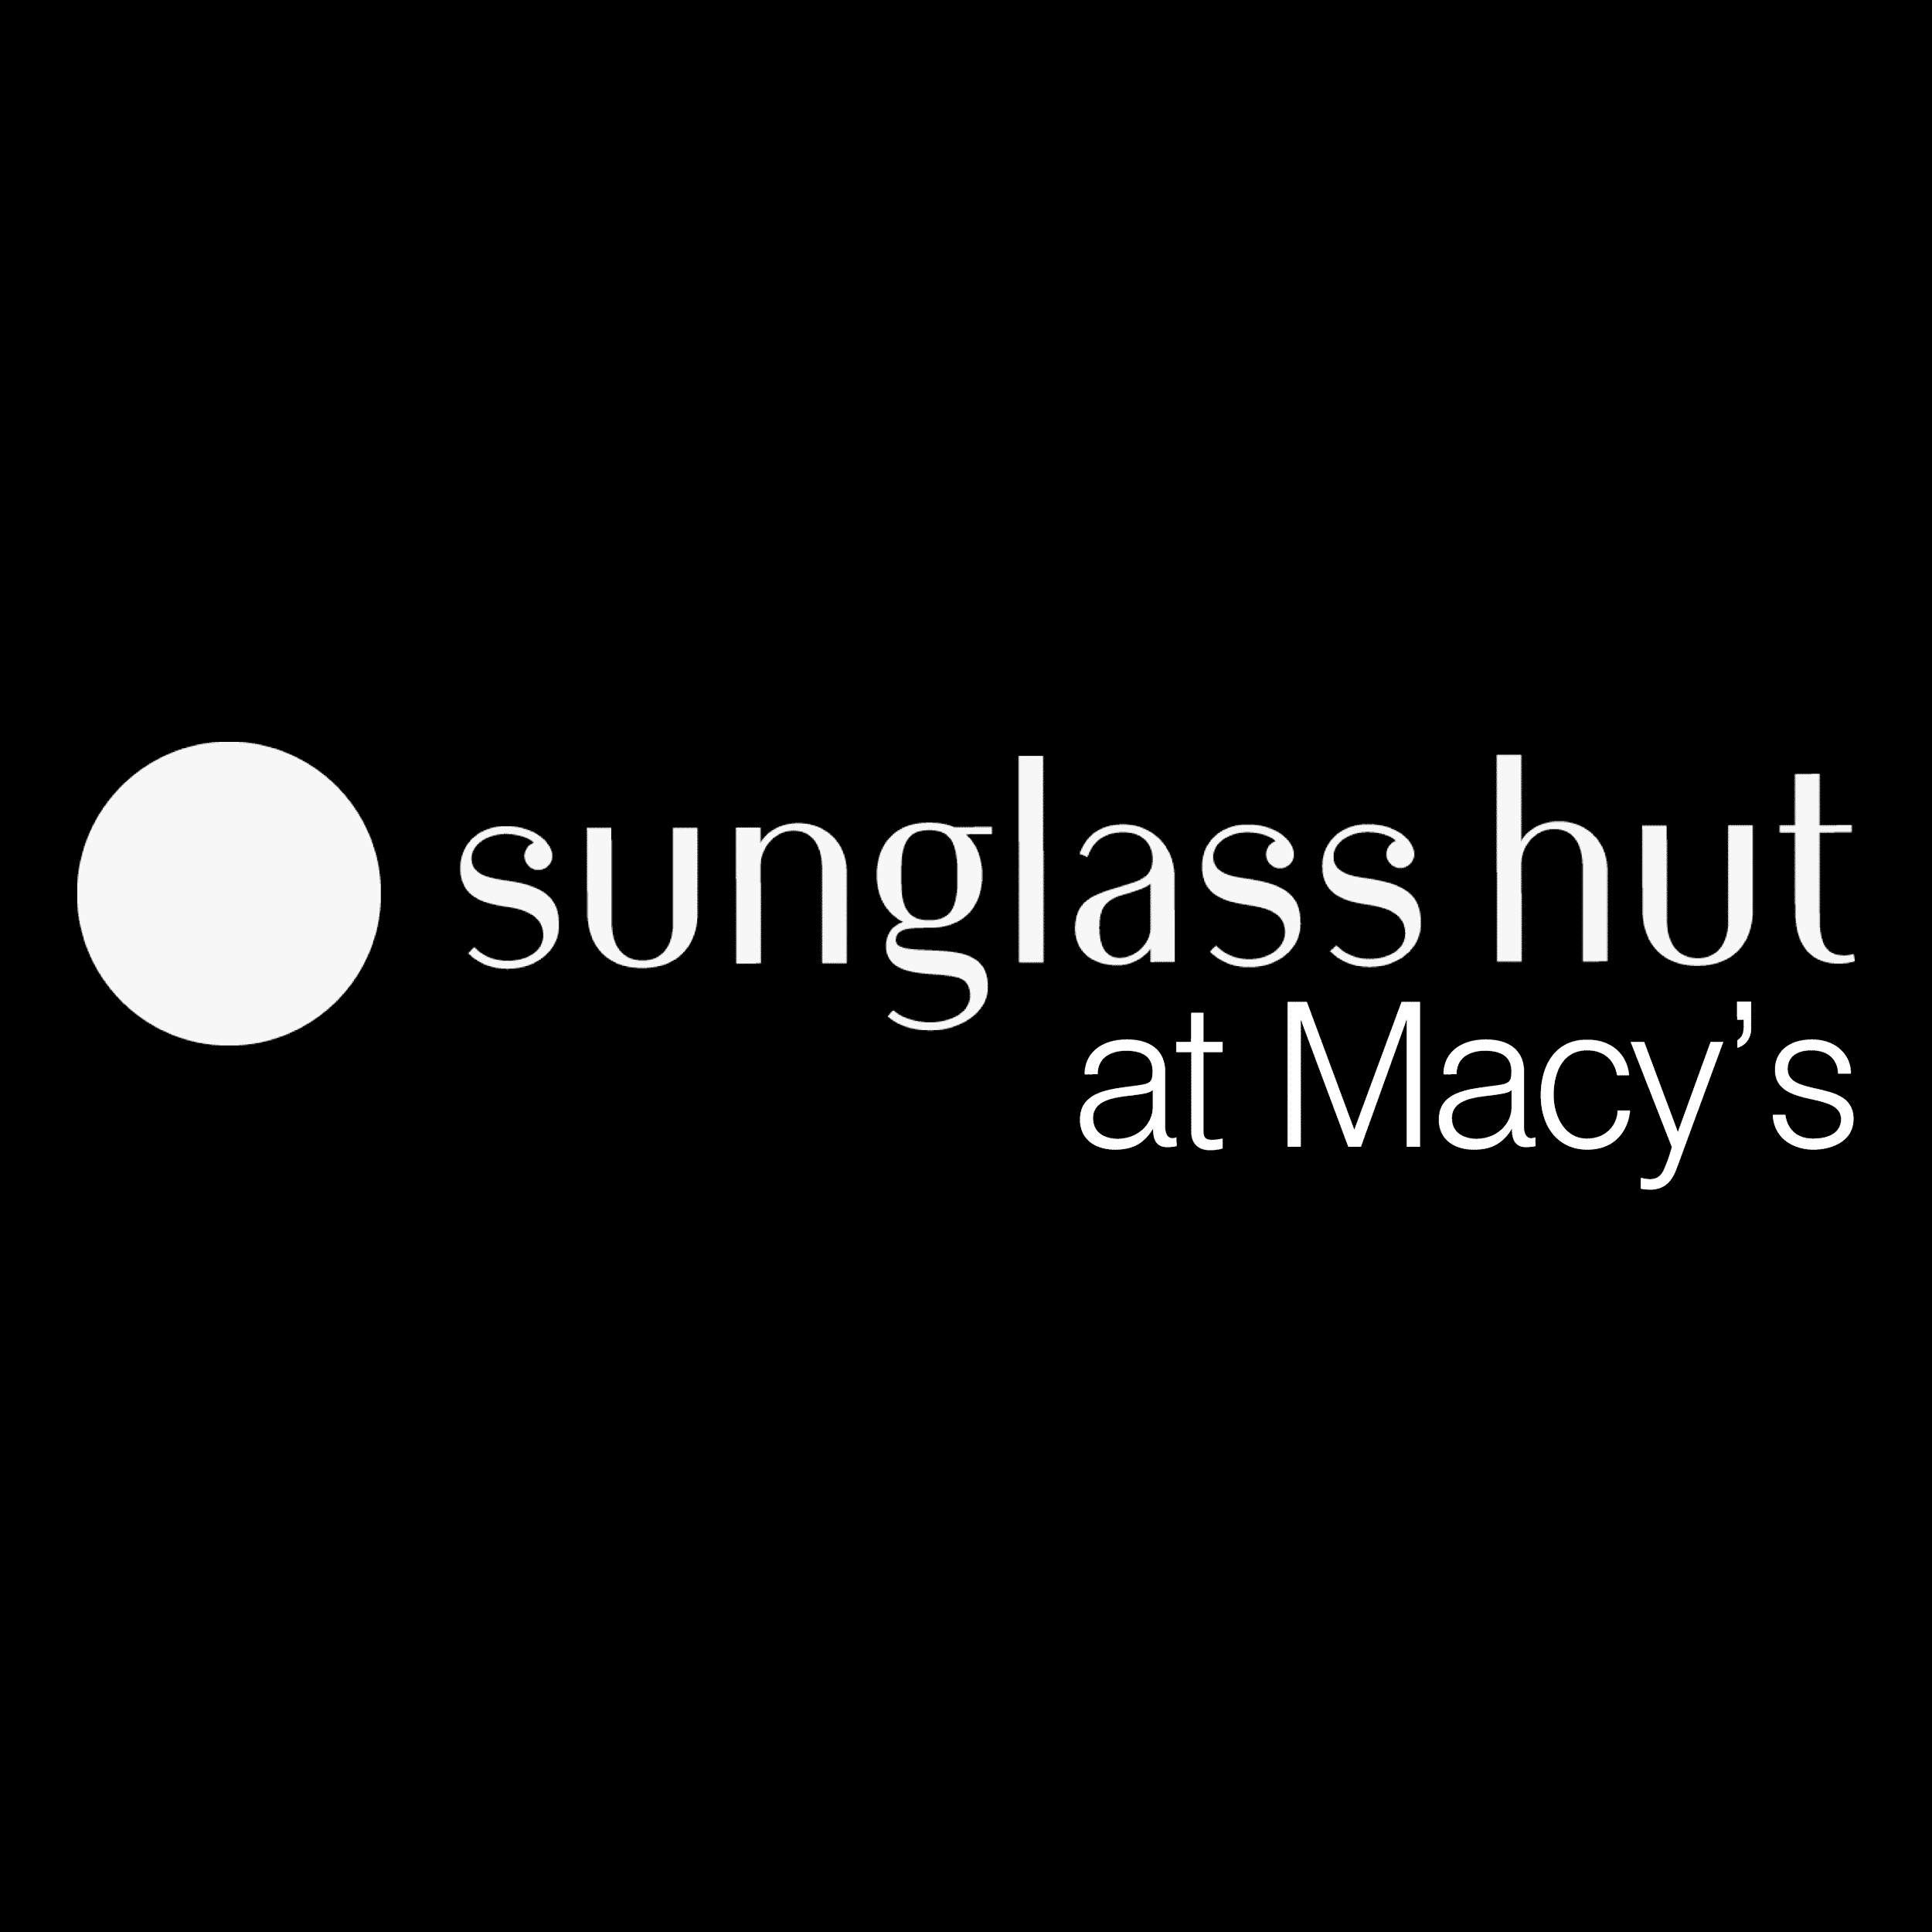 Sunglass Hut at Macy's - ad image